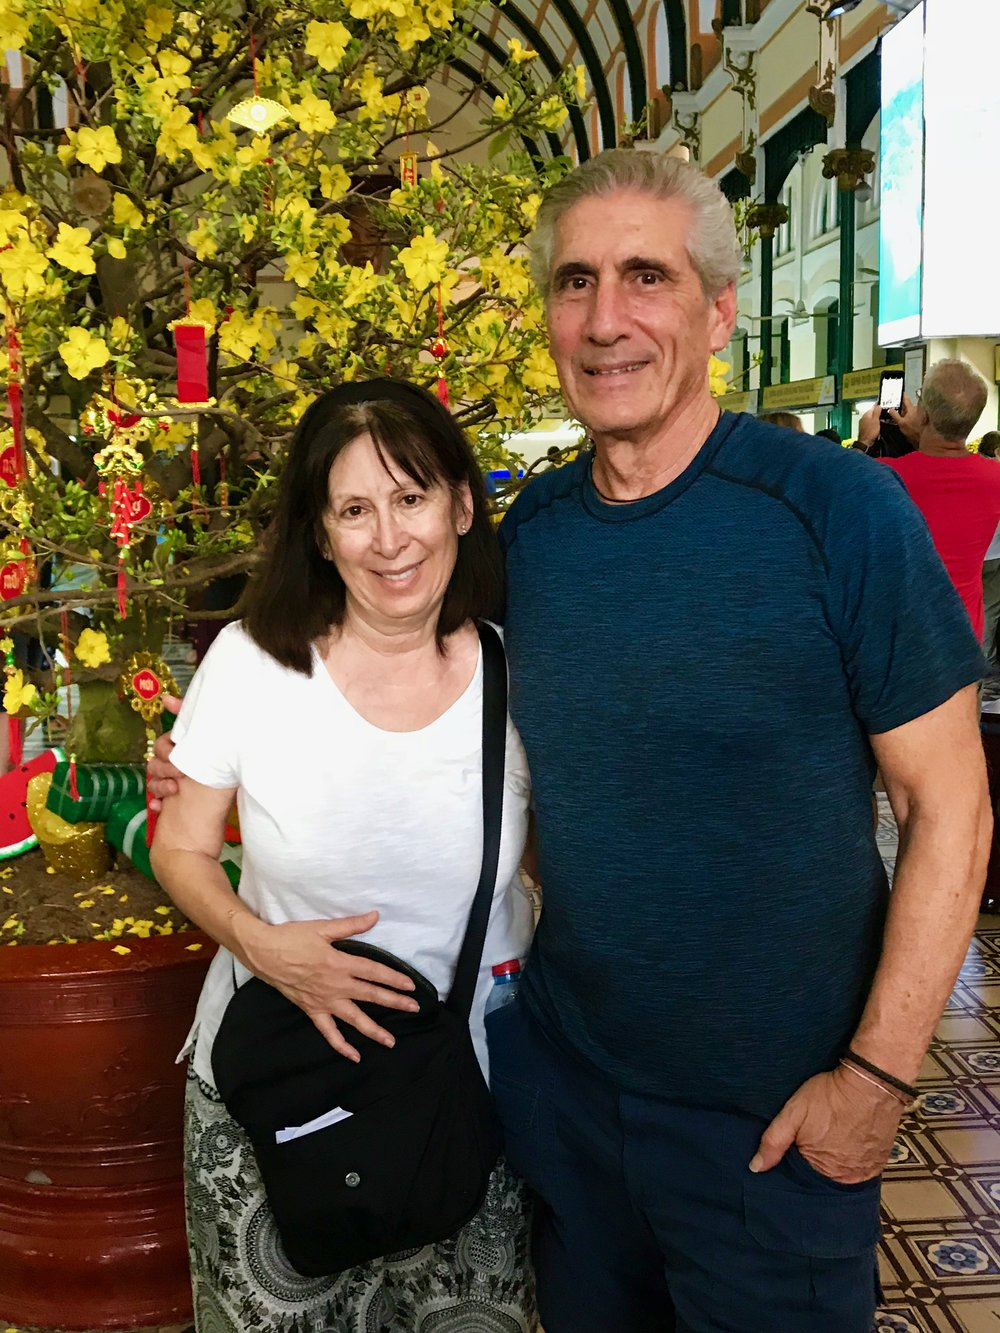 Cecile & Me Saigon Central PO front of yellow tree .jpg*.jpg